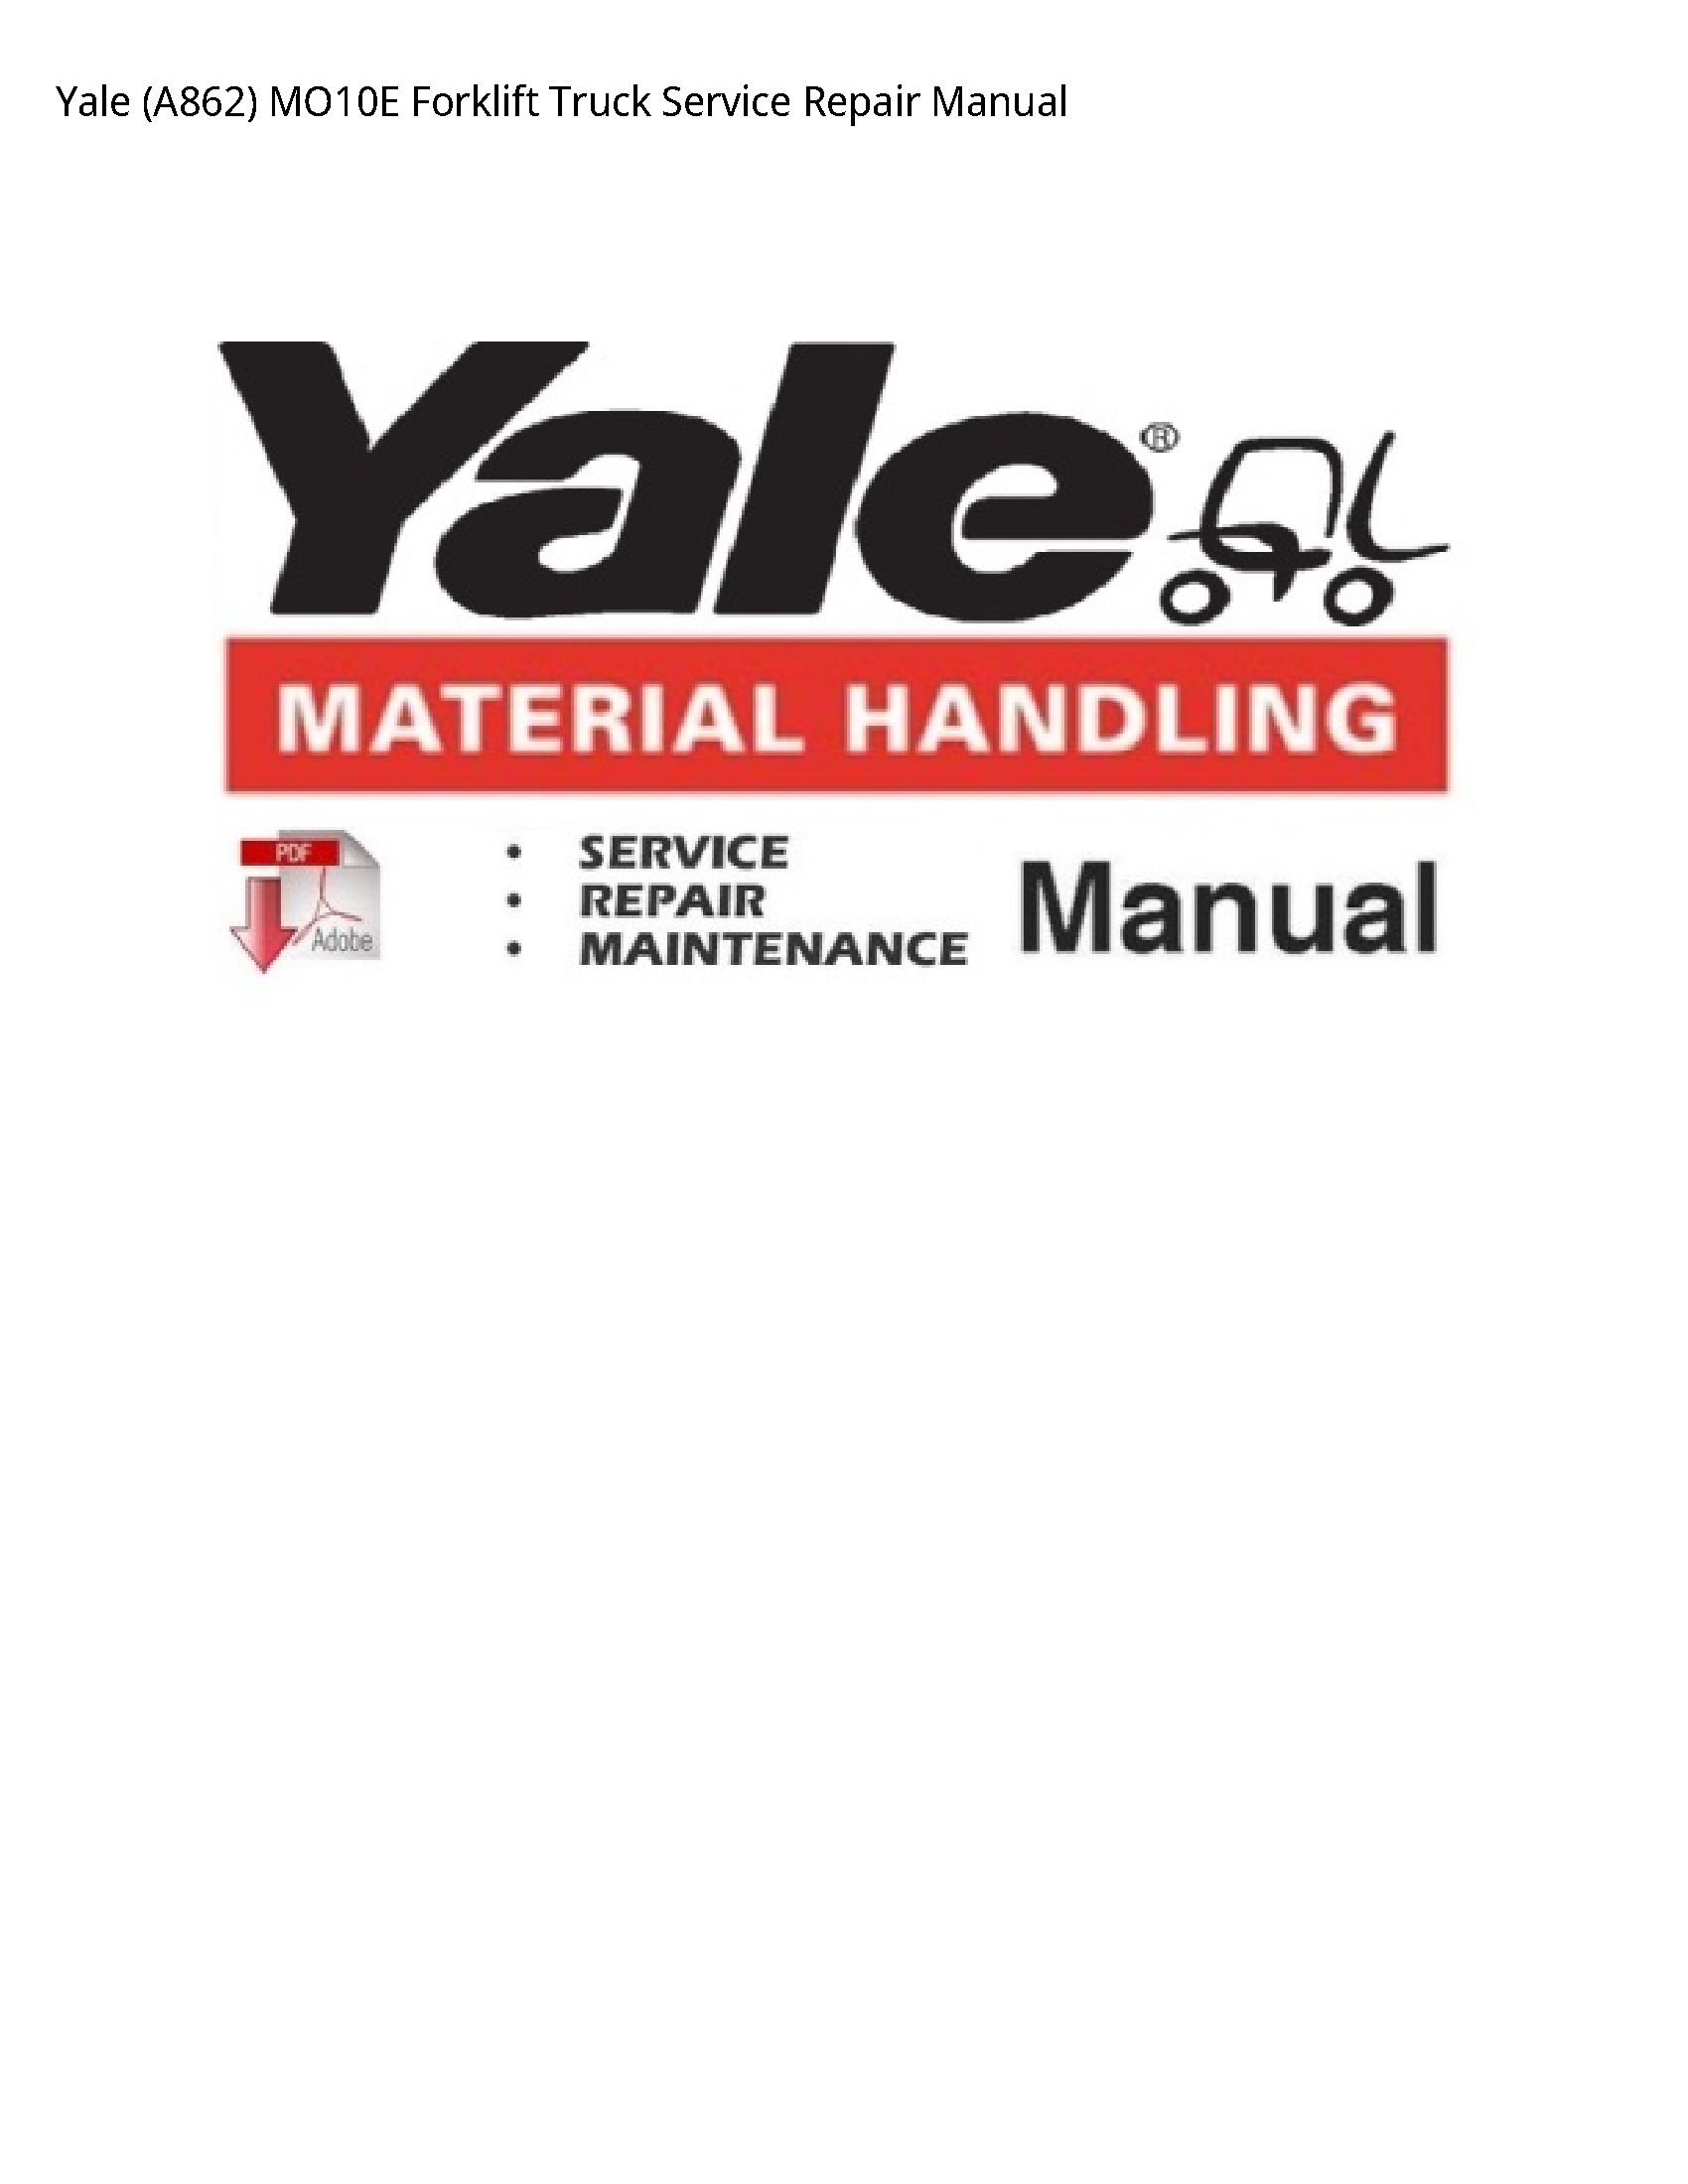 Yale (A862) Forklift Truck manual